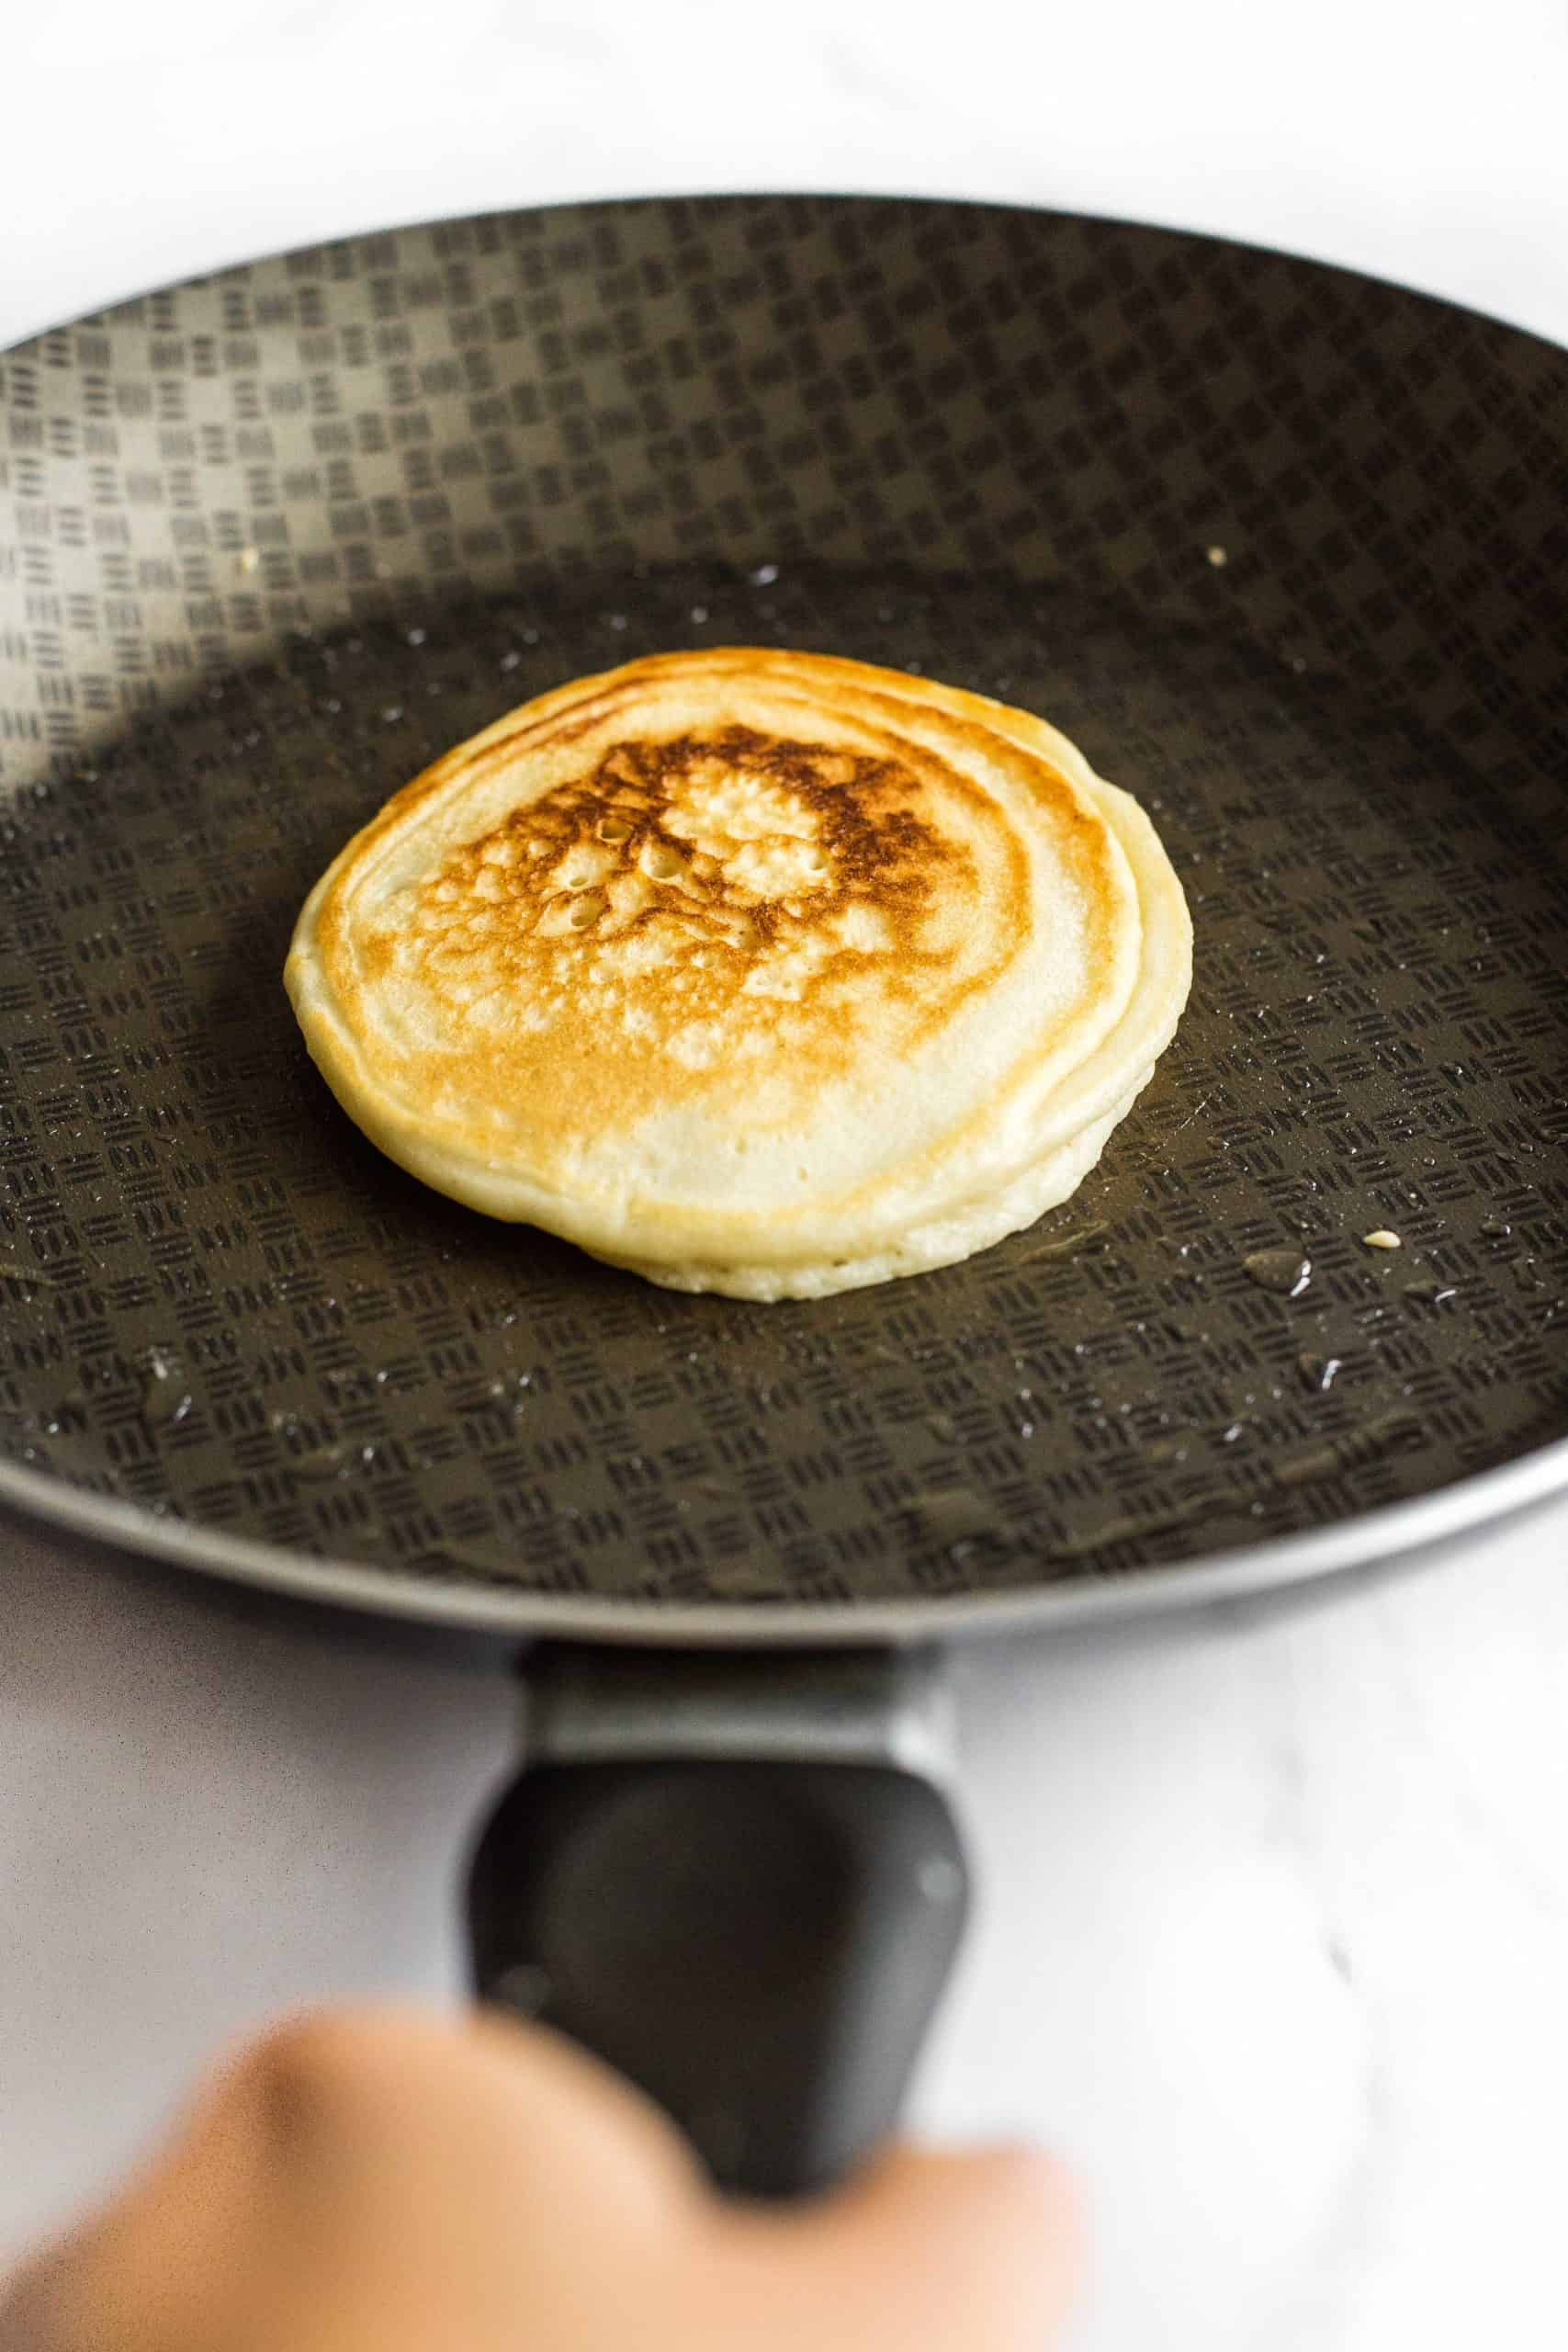 Cooking a pancake in a non-stick skillet.